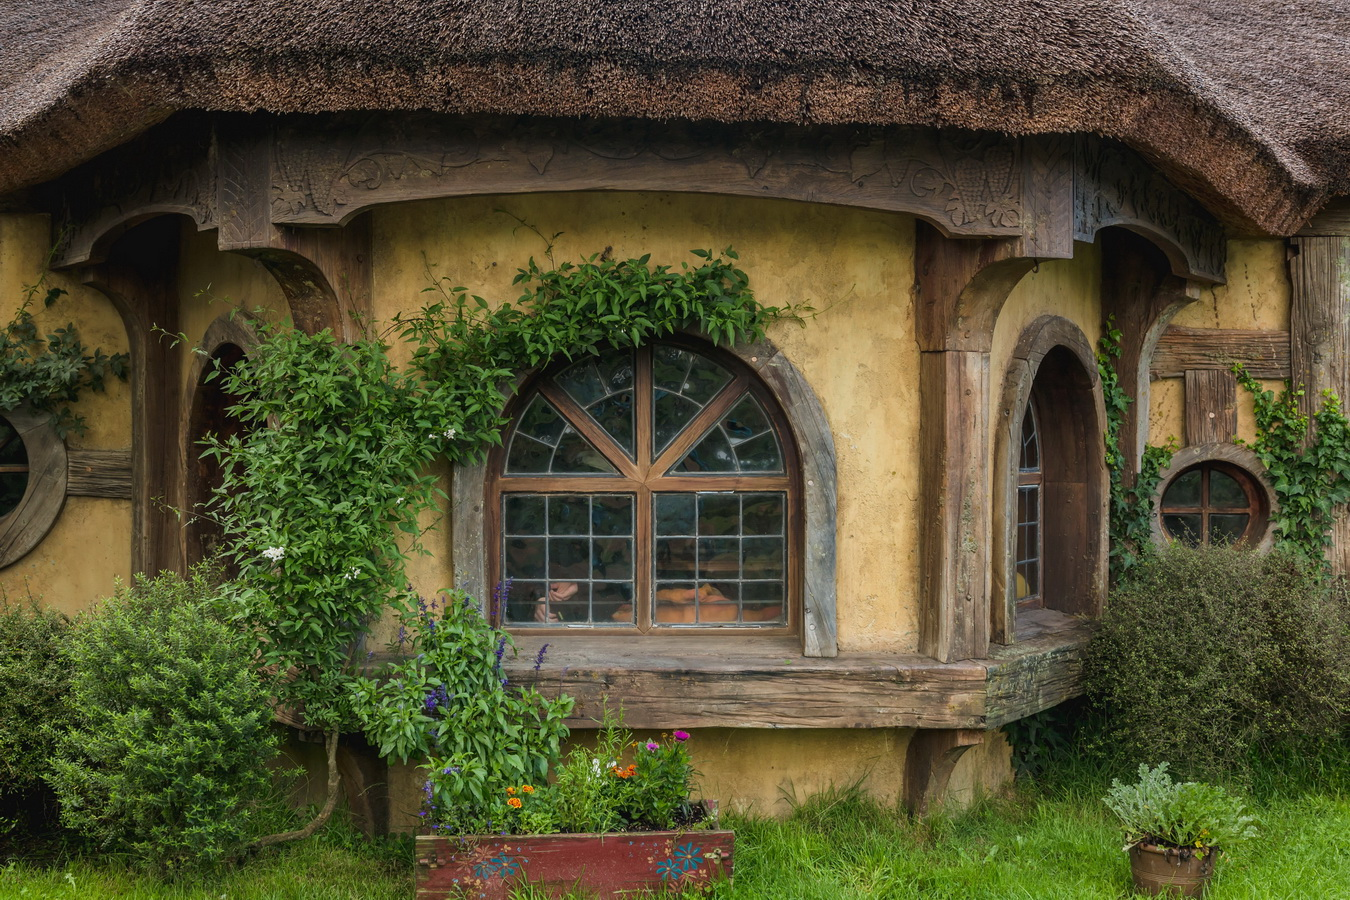 cafe,The Hobbiton, The Shire,Хоббитшир, Удел, Хоббитания, Заселье, Край,Matamata, North Island ,New Zealand